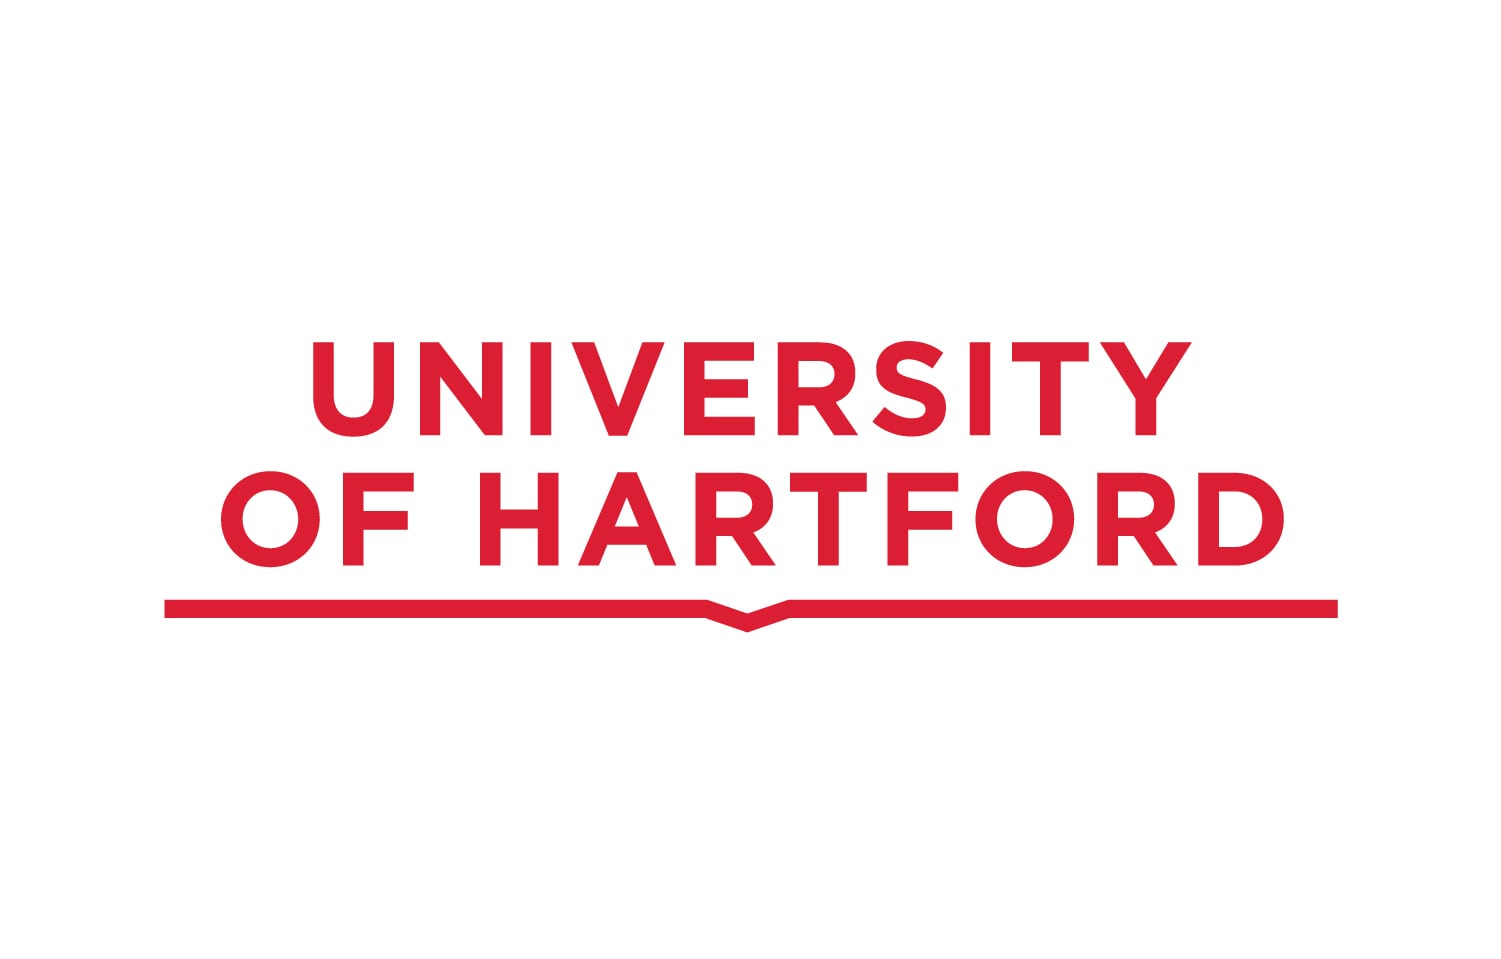 University of Hartford - Human Resources MBA